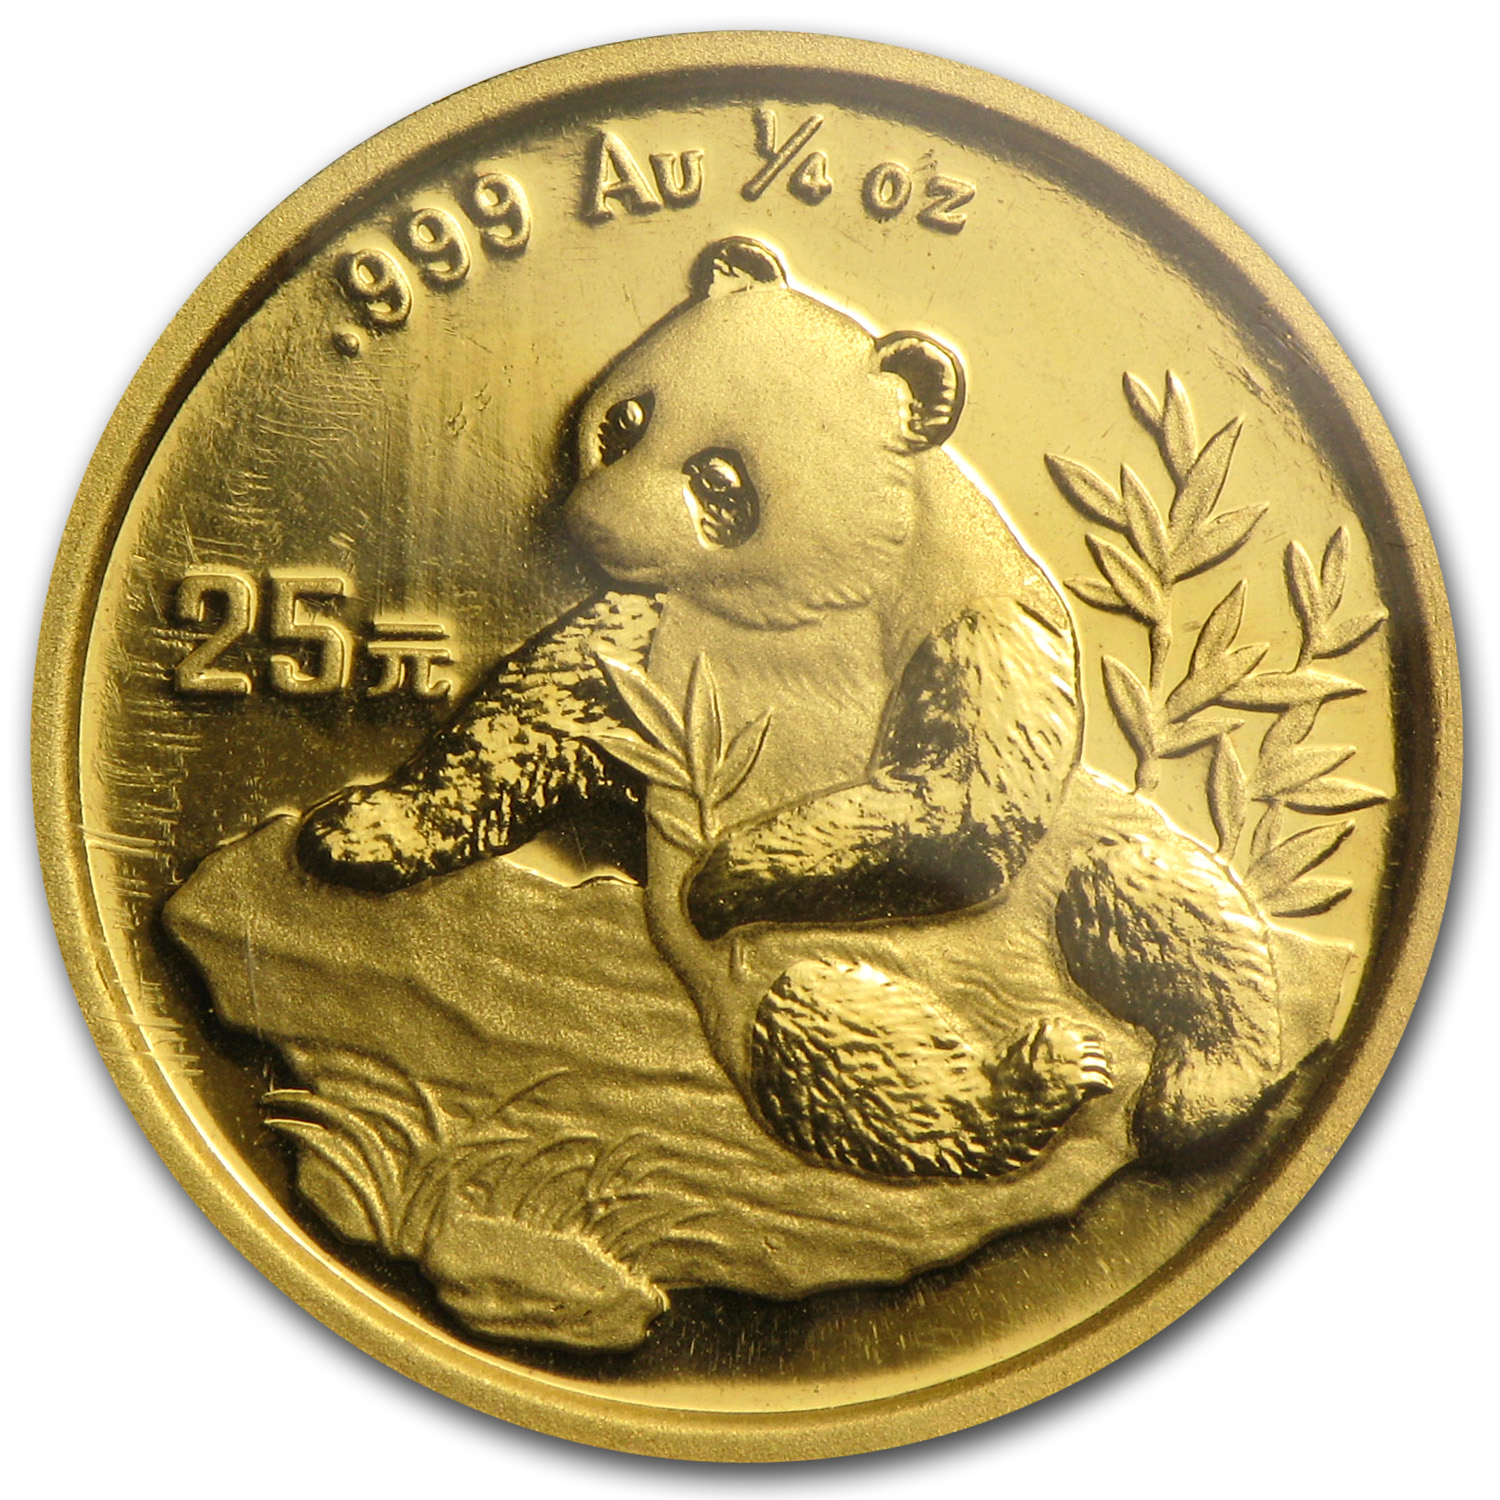 1998 China 1/4 oz Gold Panda Small Date BU (Sealed)